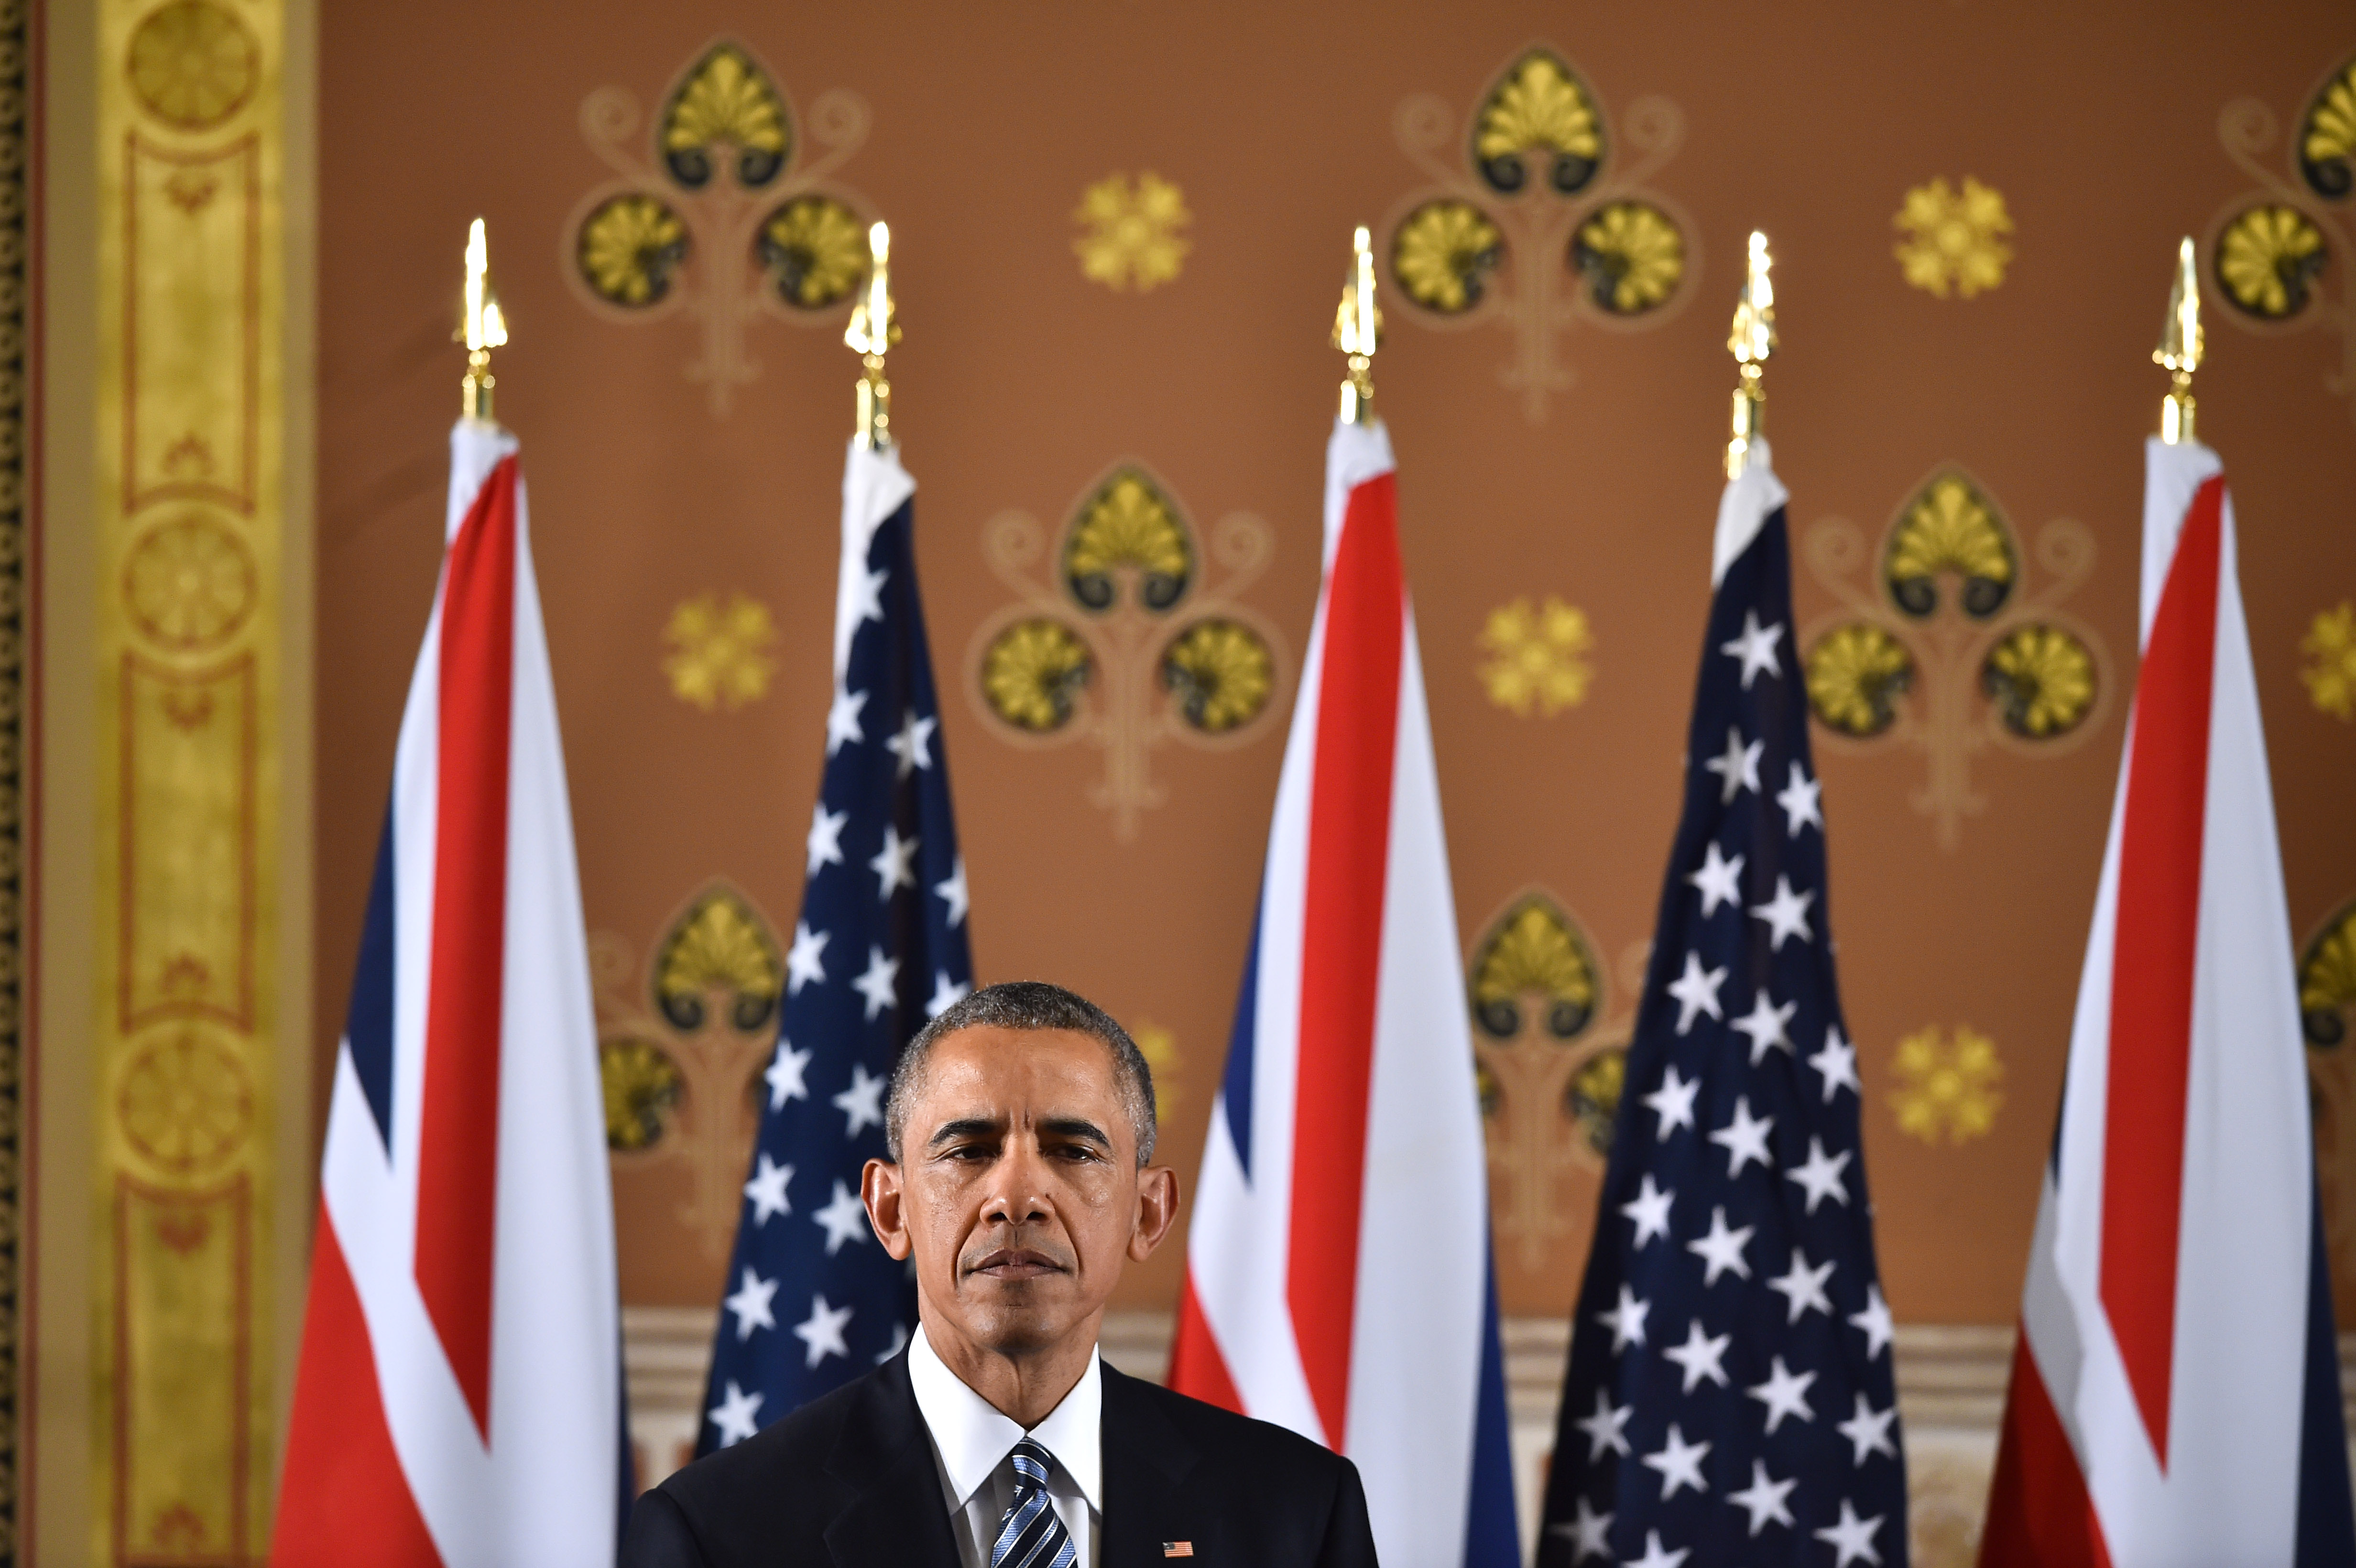 US President Barack Obama speaks during a press conference with British Prime Minister David Cameron at the Foreign and Commonwealth Office on April 22, 2016 in London, England.  WPA Pool—Getty Images